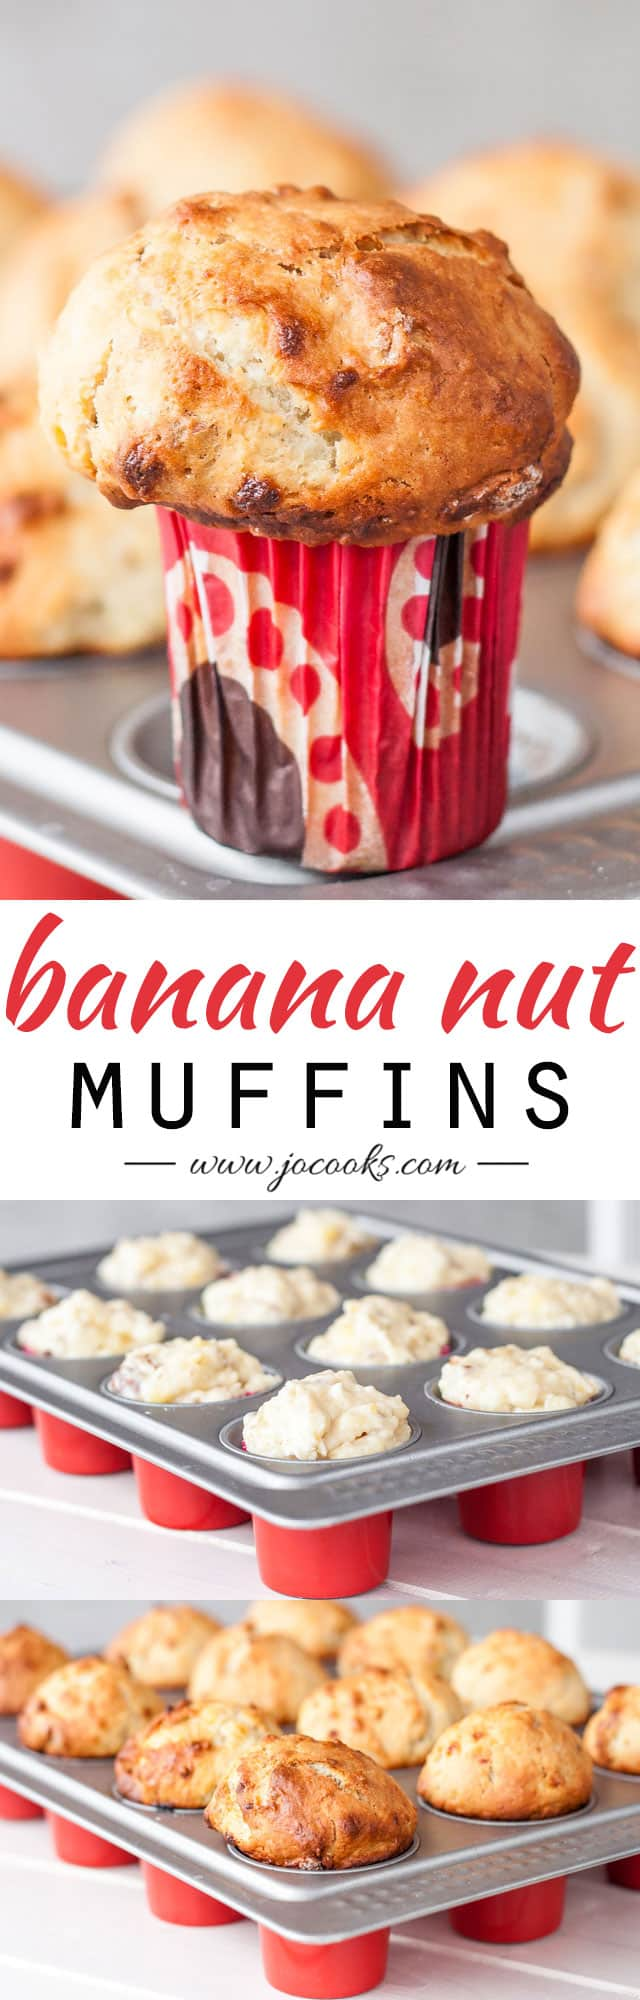 banana-nut-muffins-collage